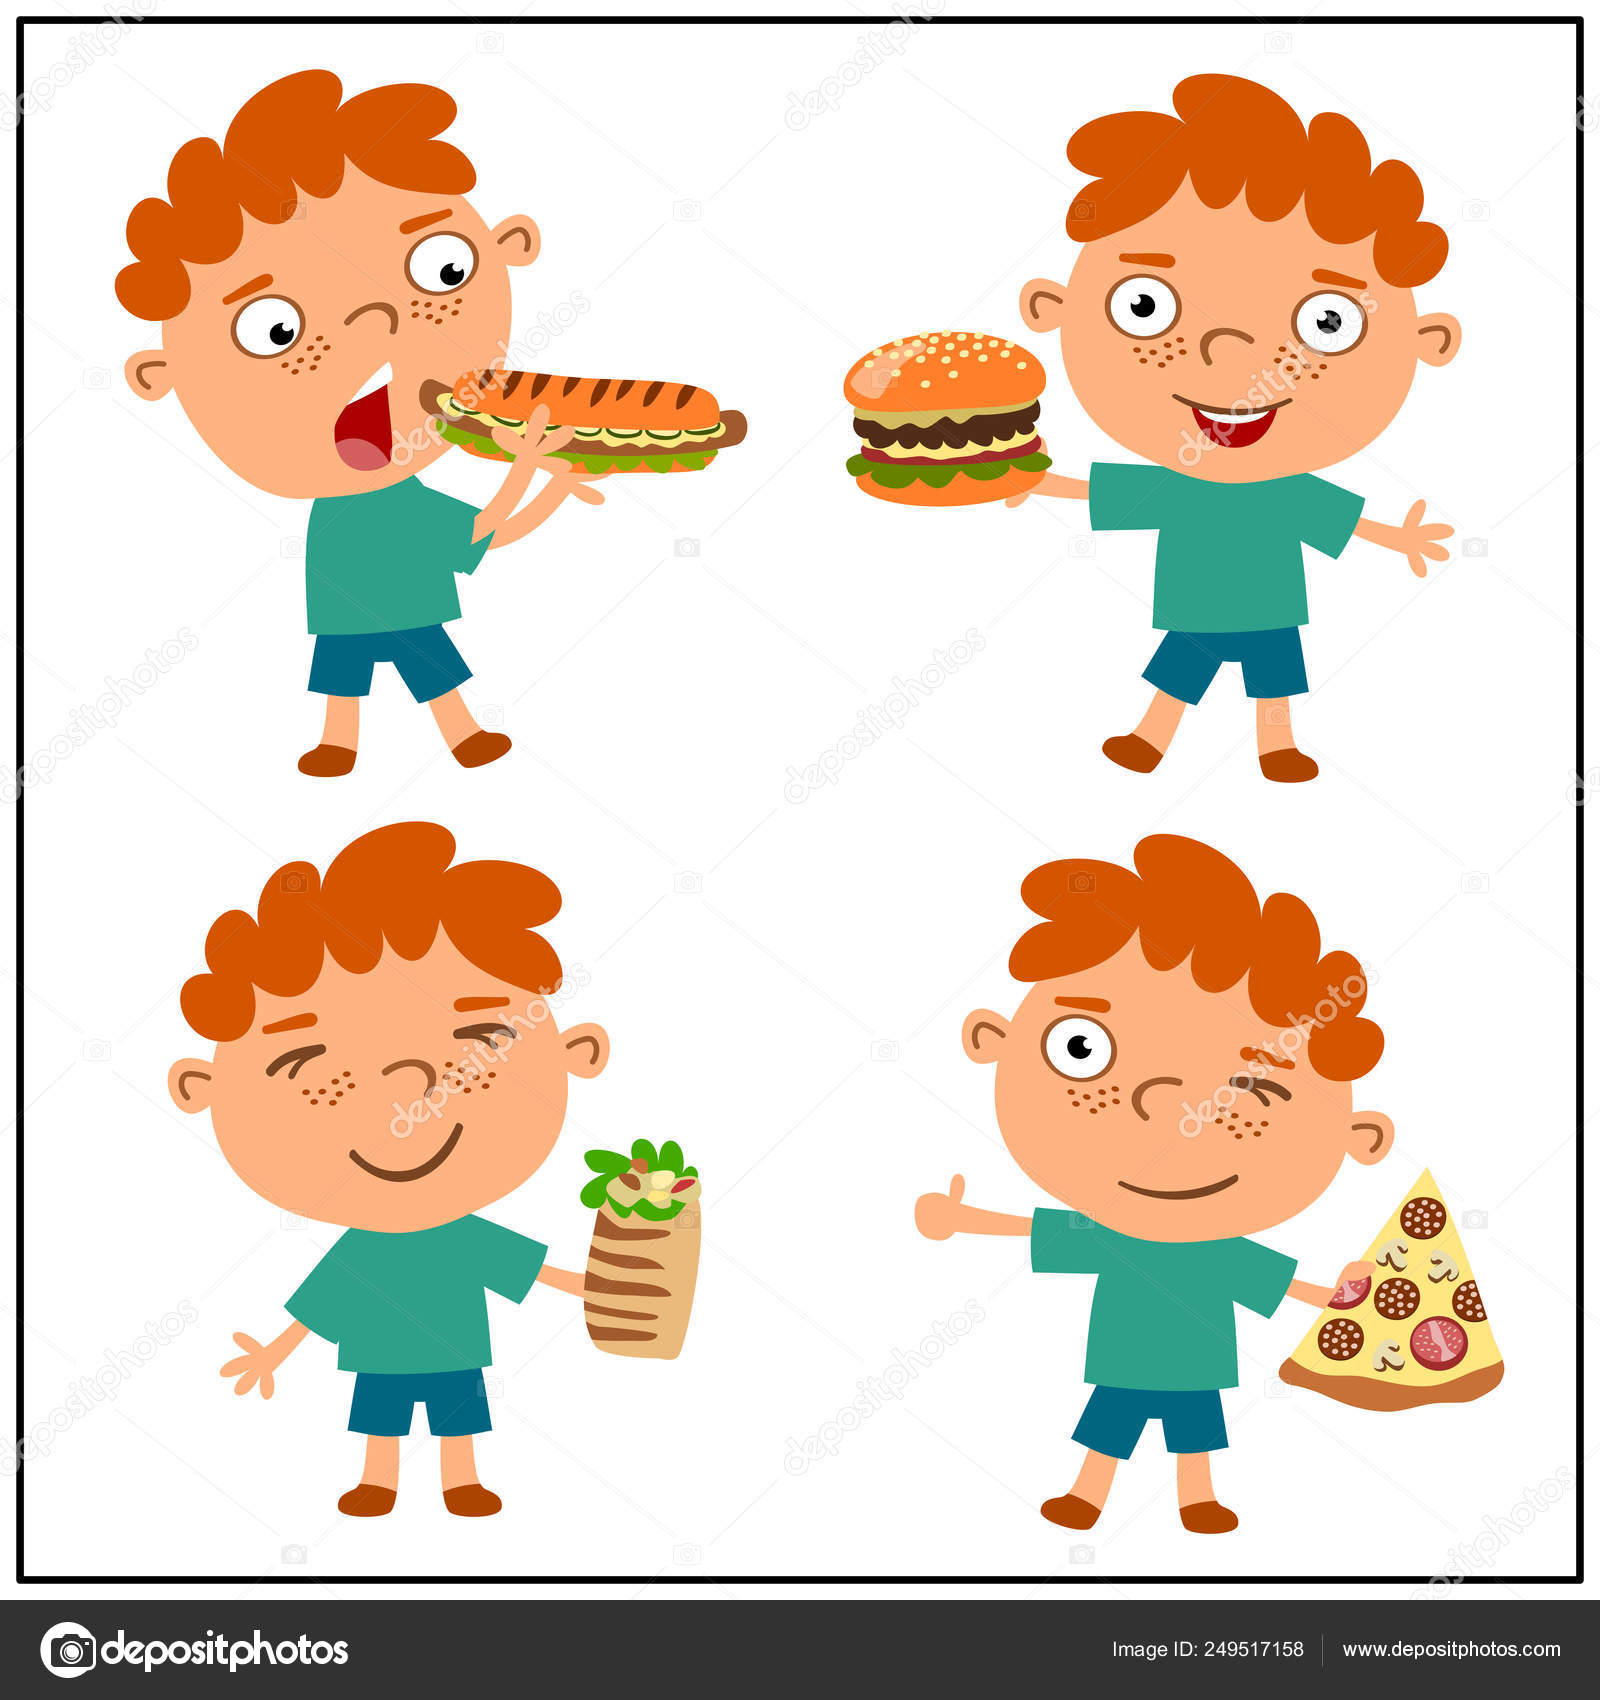 Funny Cartoon Images Of Boys set little funny boys cartoon style eating fast food